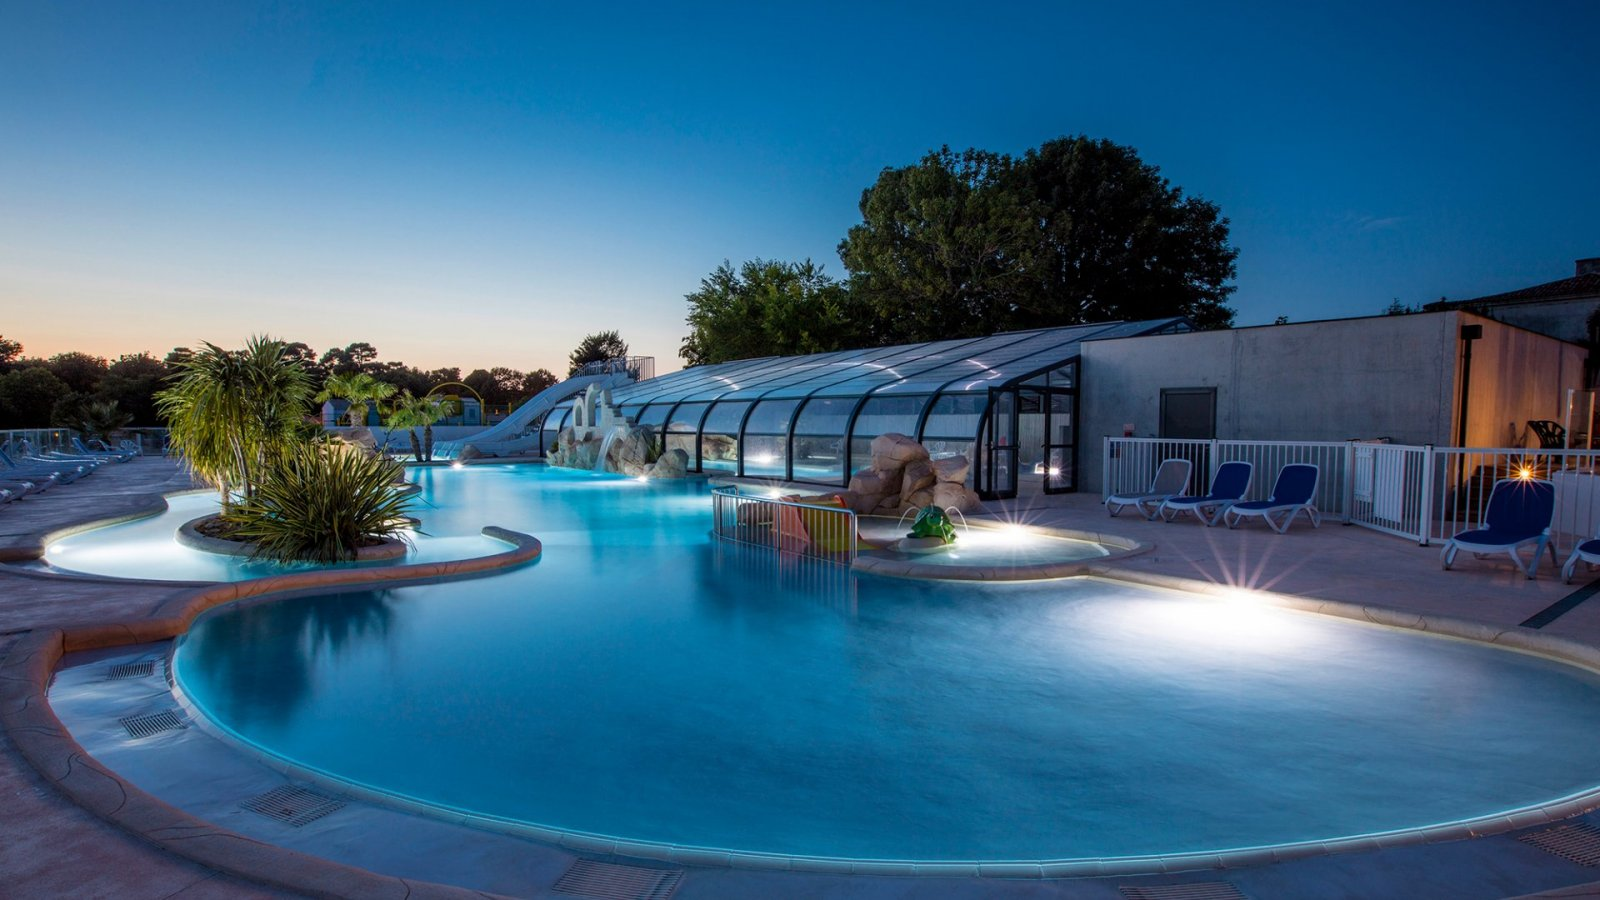 Camping 4 Stars Charente Maritime 17 Camping Le Logis Du